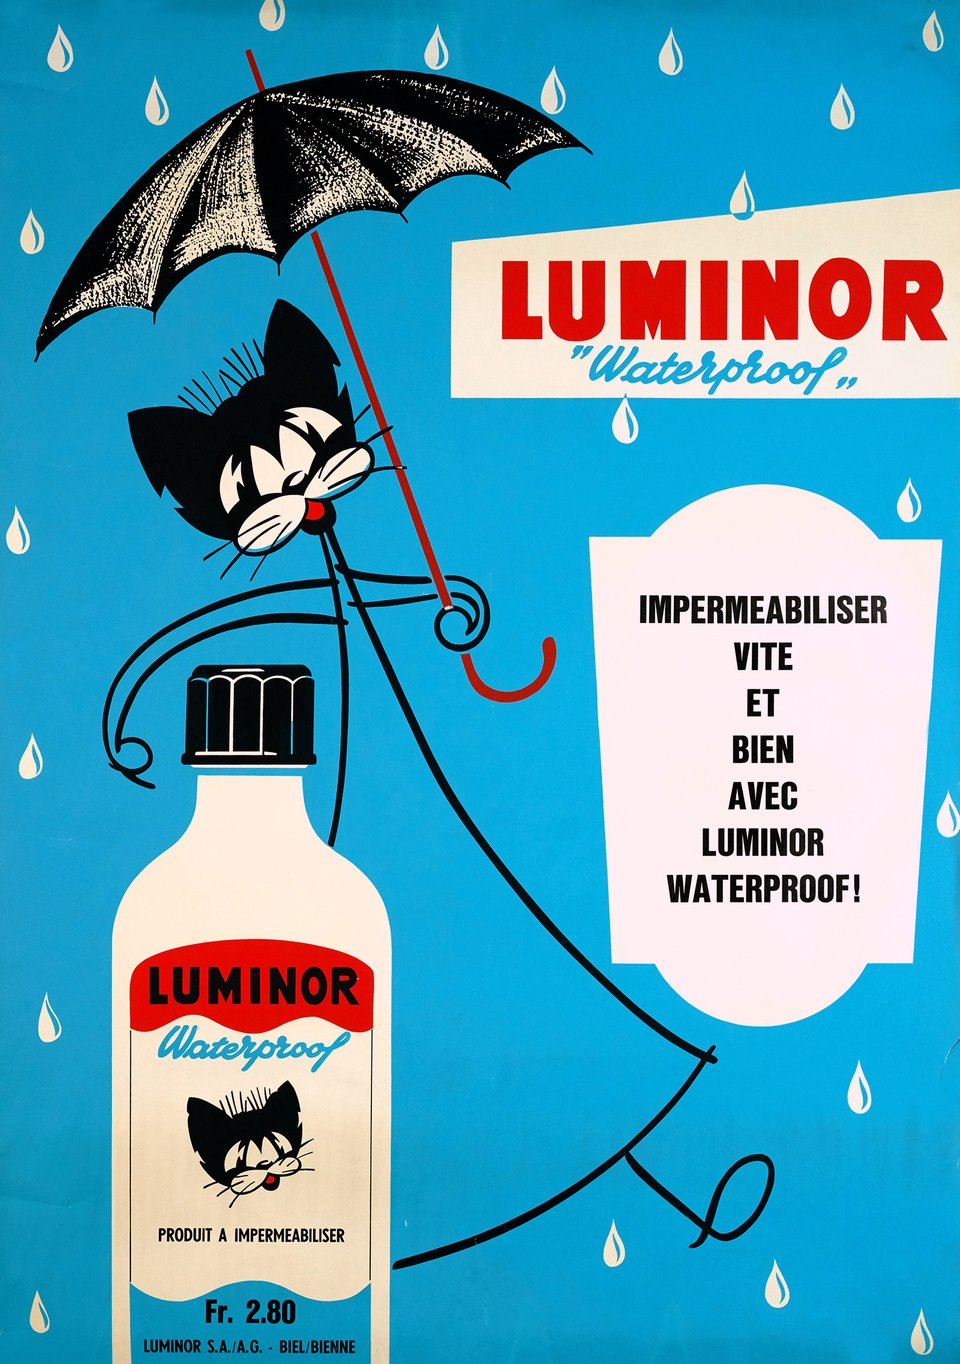 Luminor Waterproof – Affiche ancienne – ANONYME – 1950